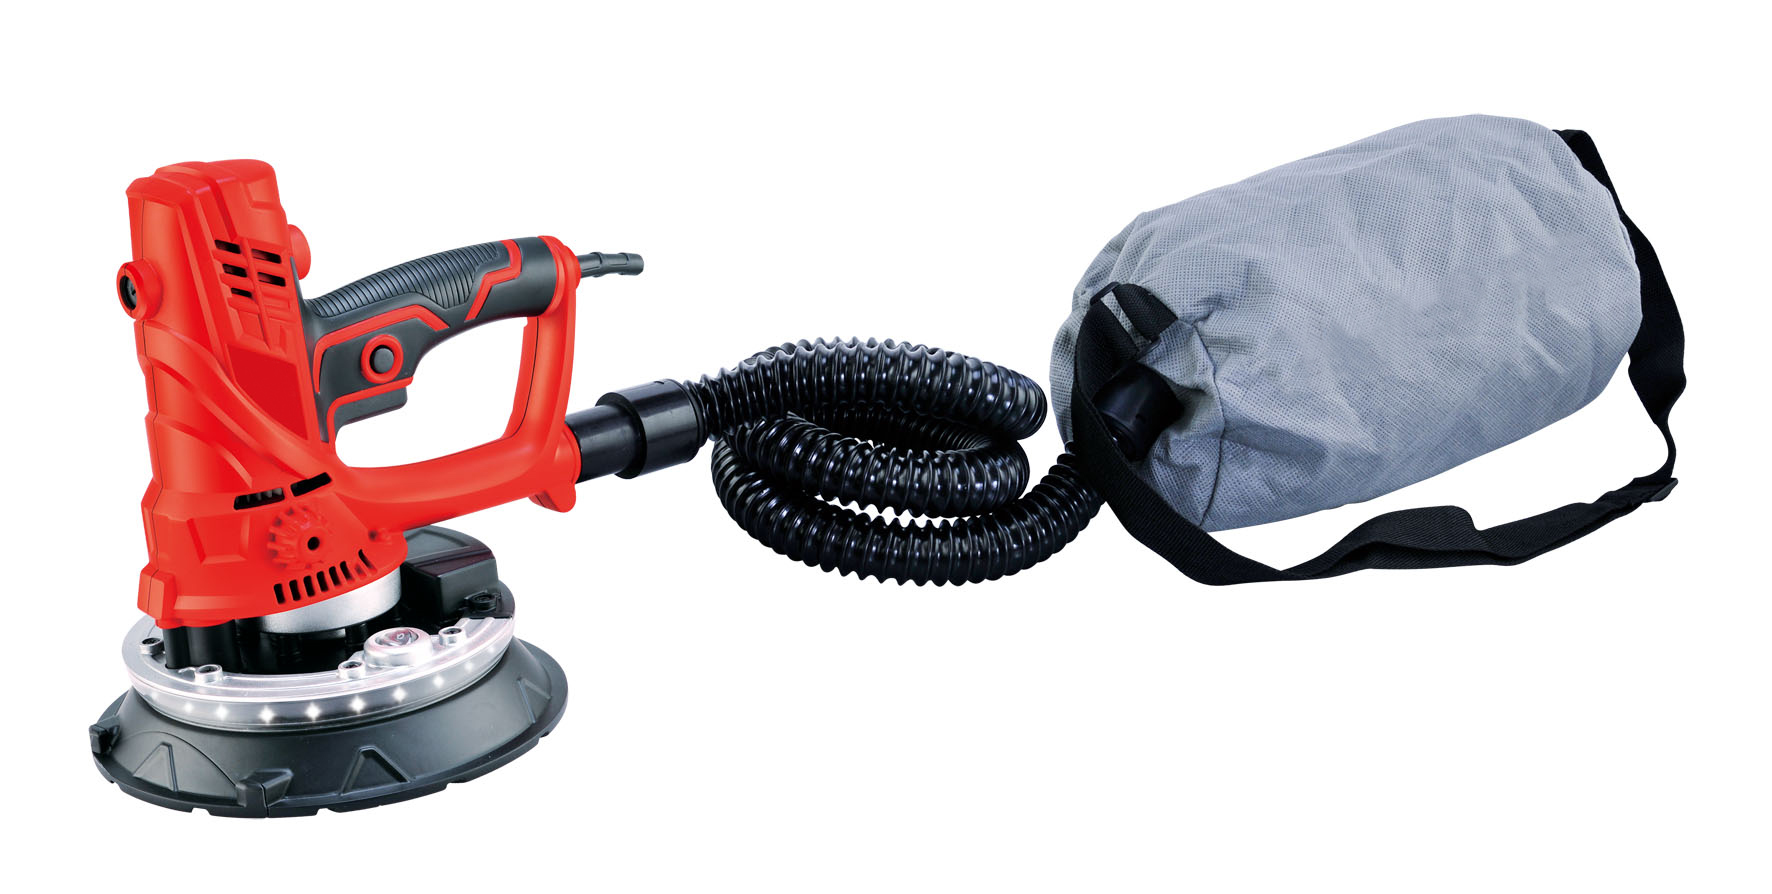 ERAY-700D-8 drywall sander with automatic vacuum system